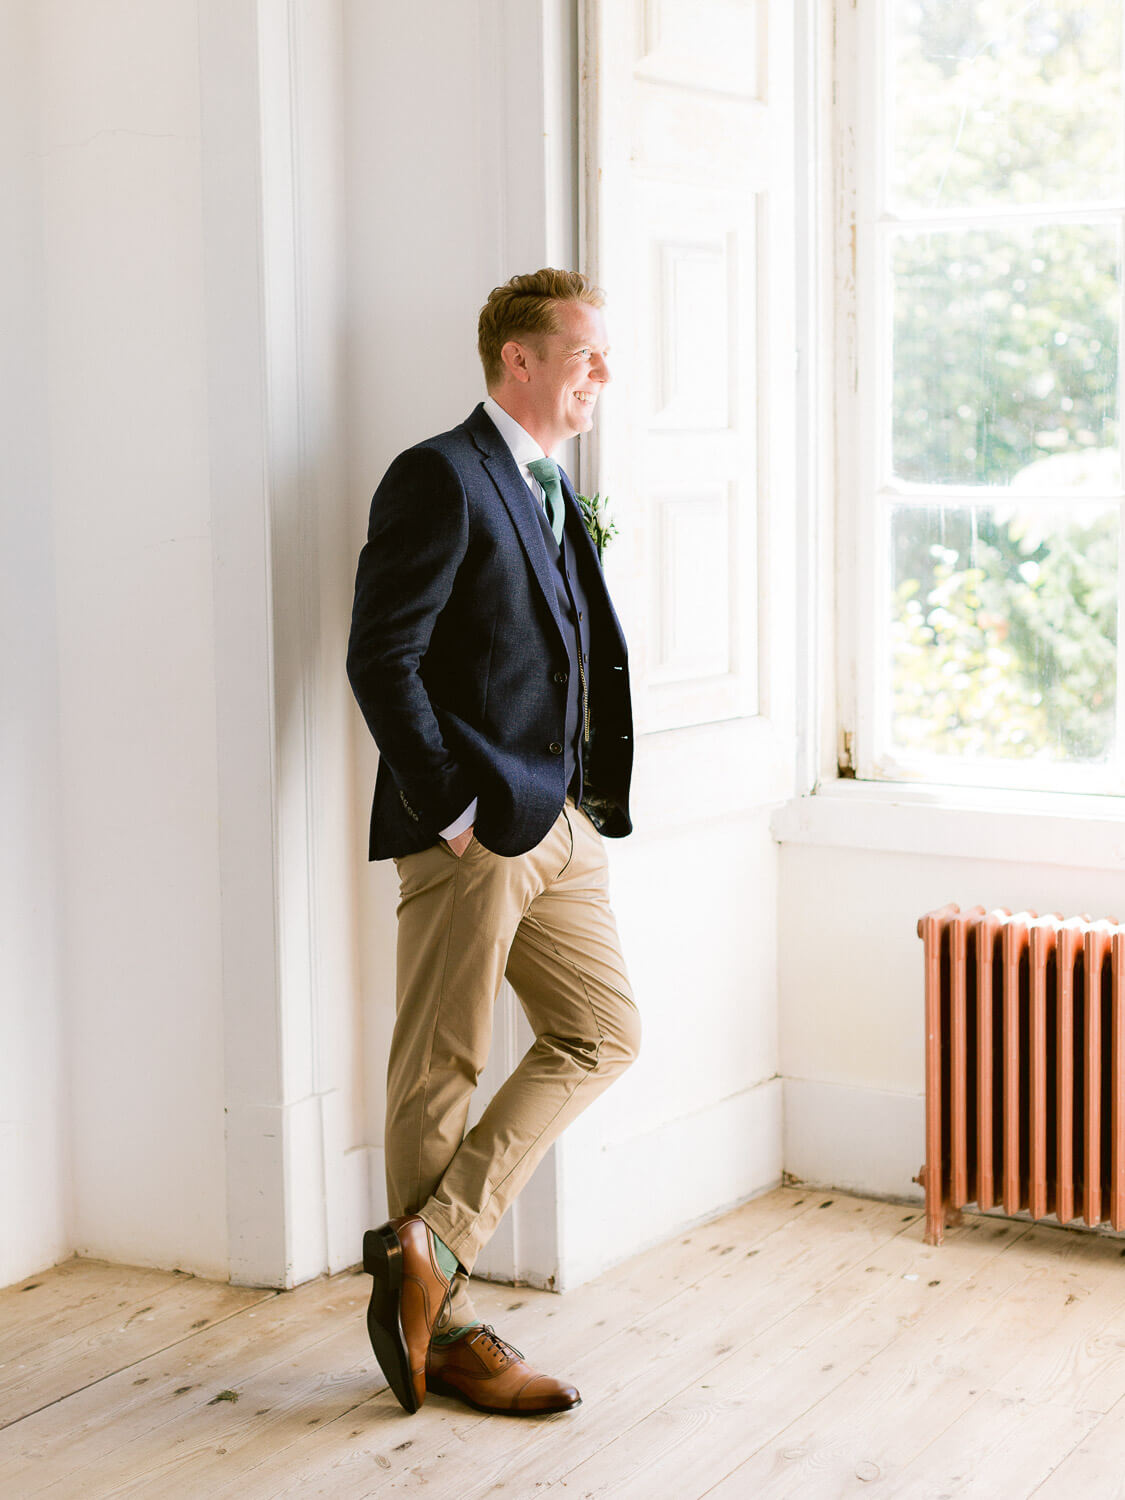 relaxed groom portrait by a window at My Vintage Wedding venue by Portugal Wedding Photographer